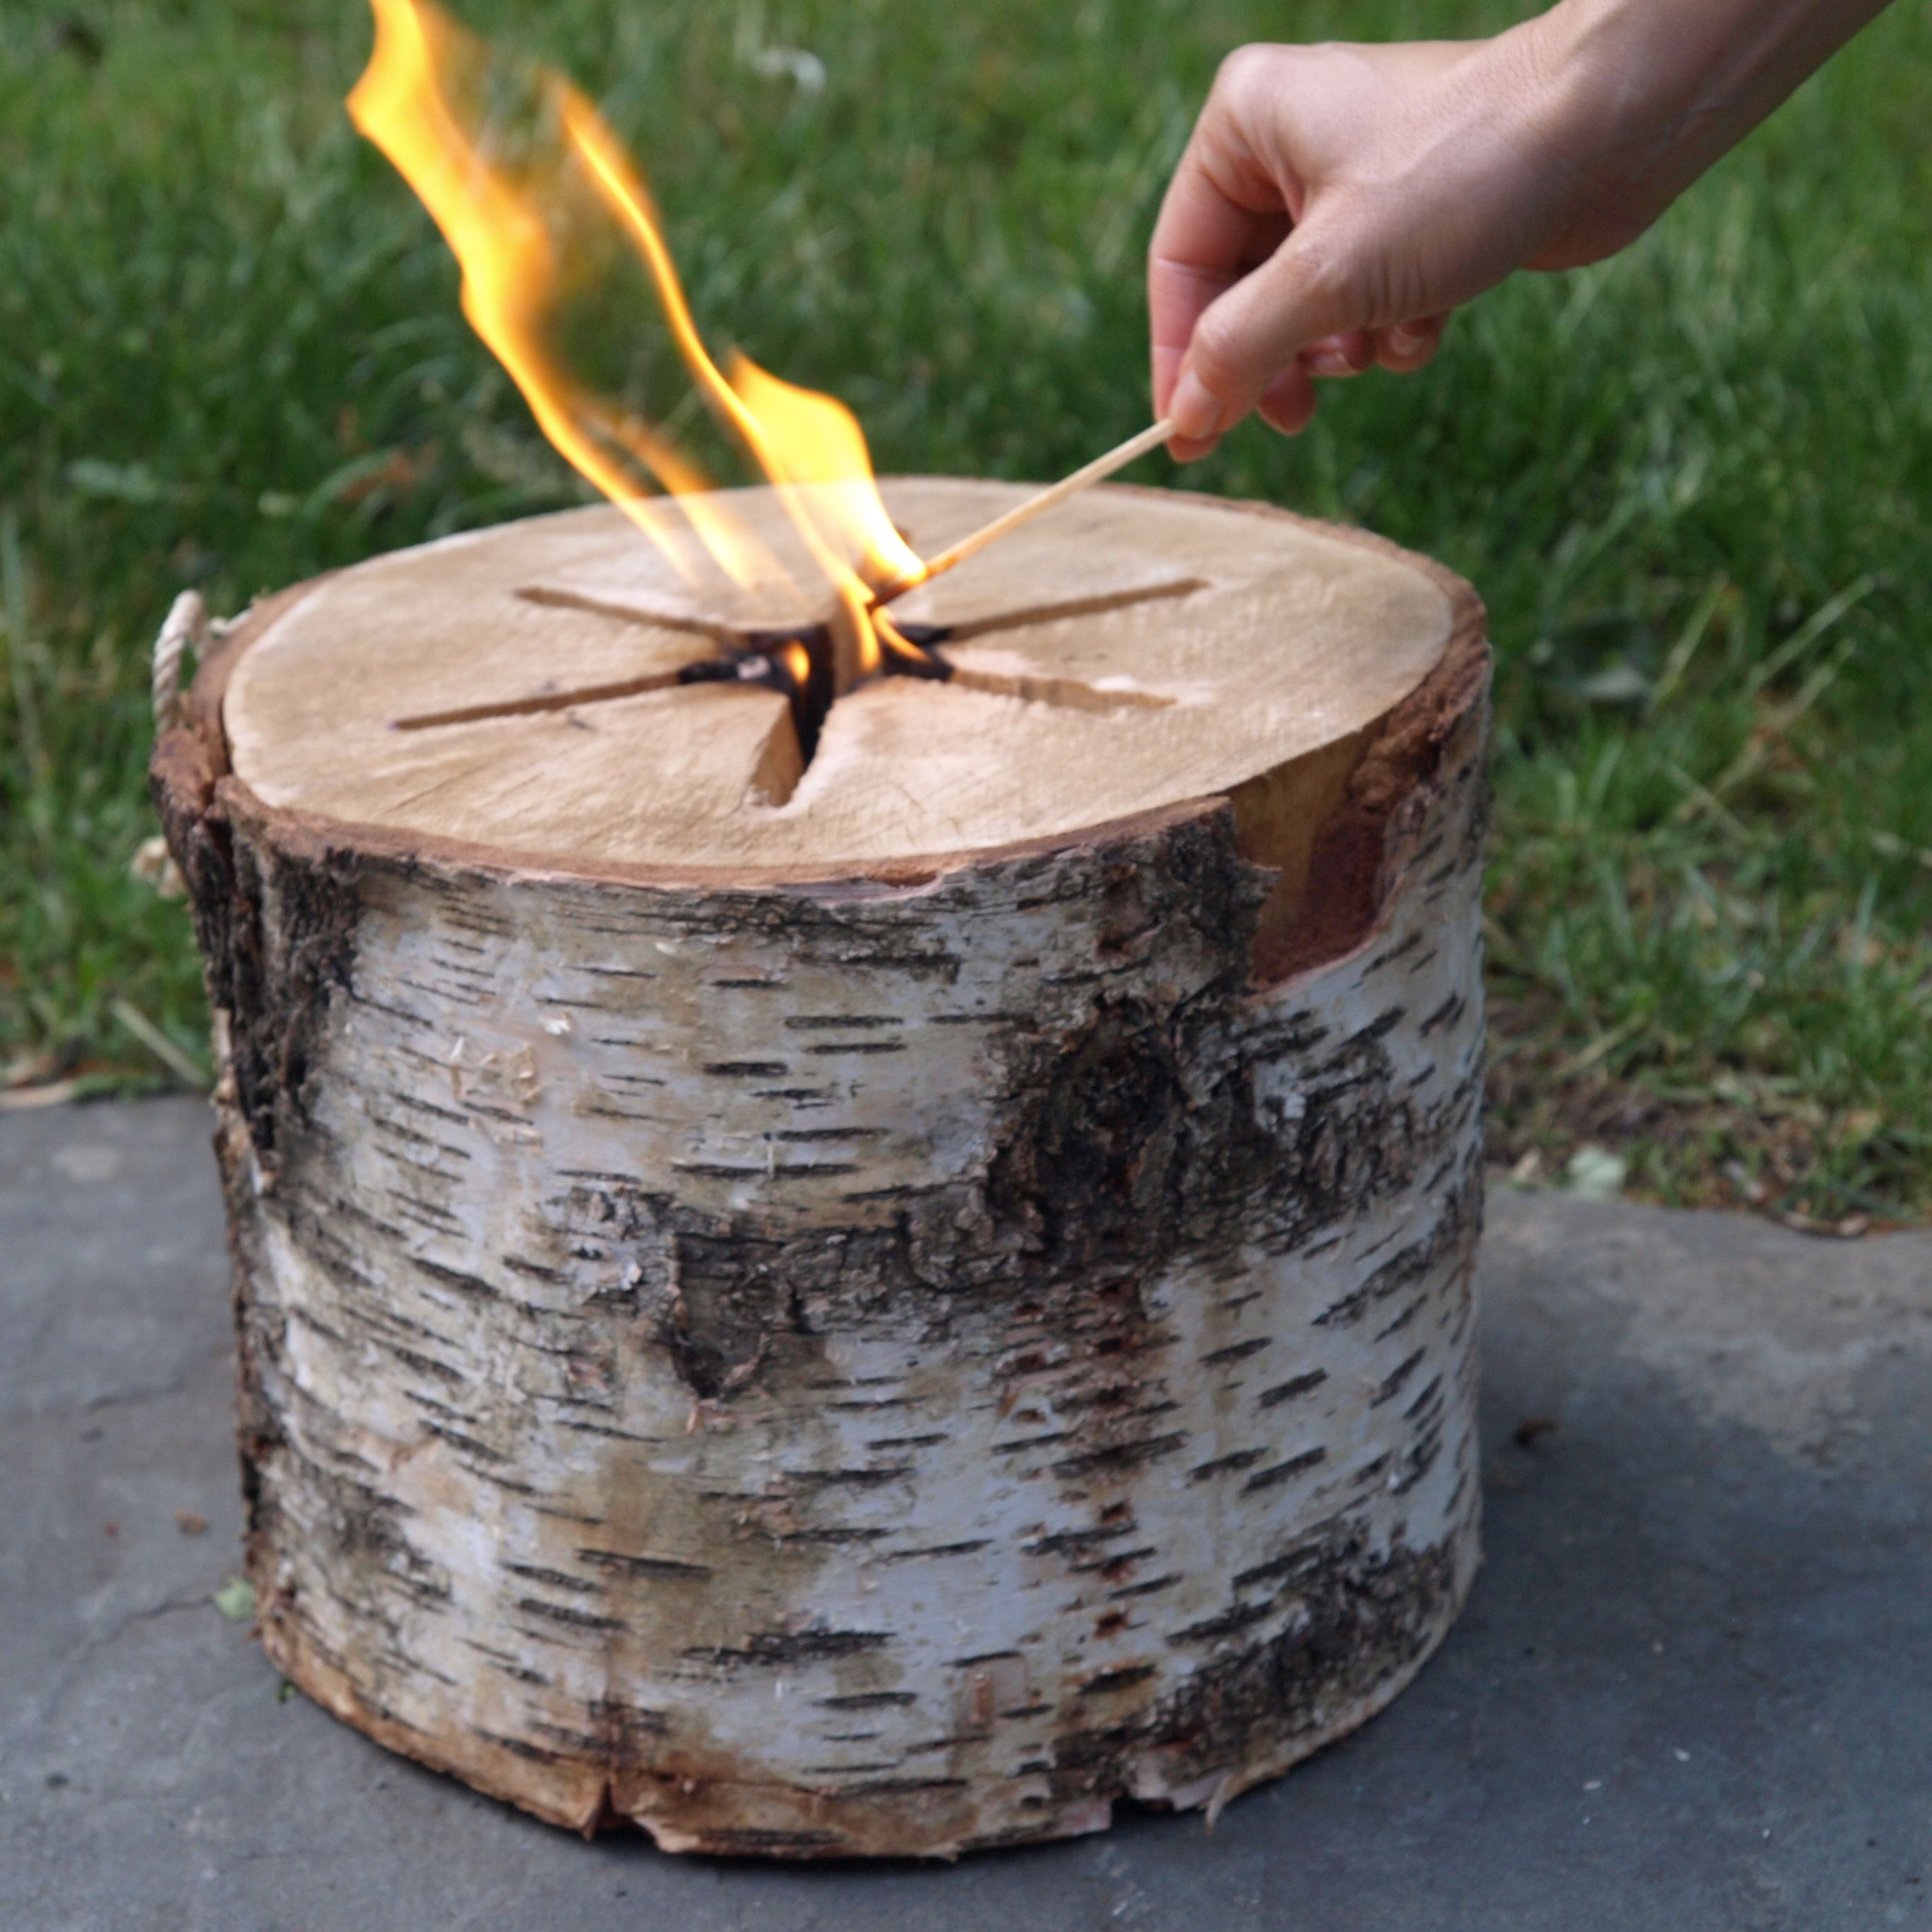 Light n Go Bonfire Log Jumbo $15 standard $10 Available at Home